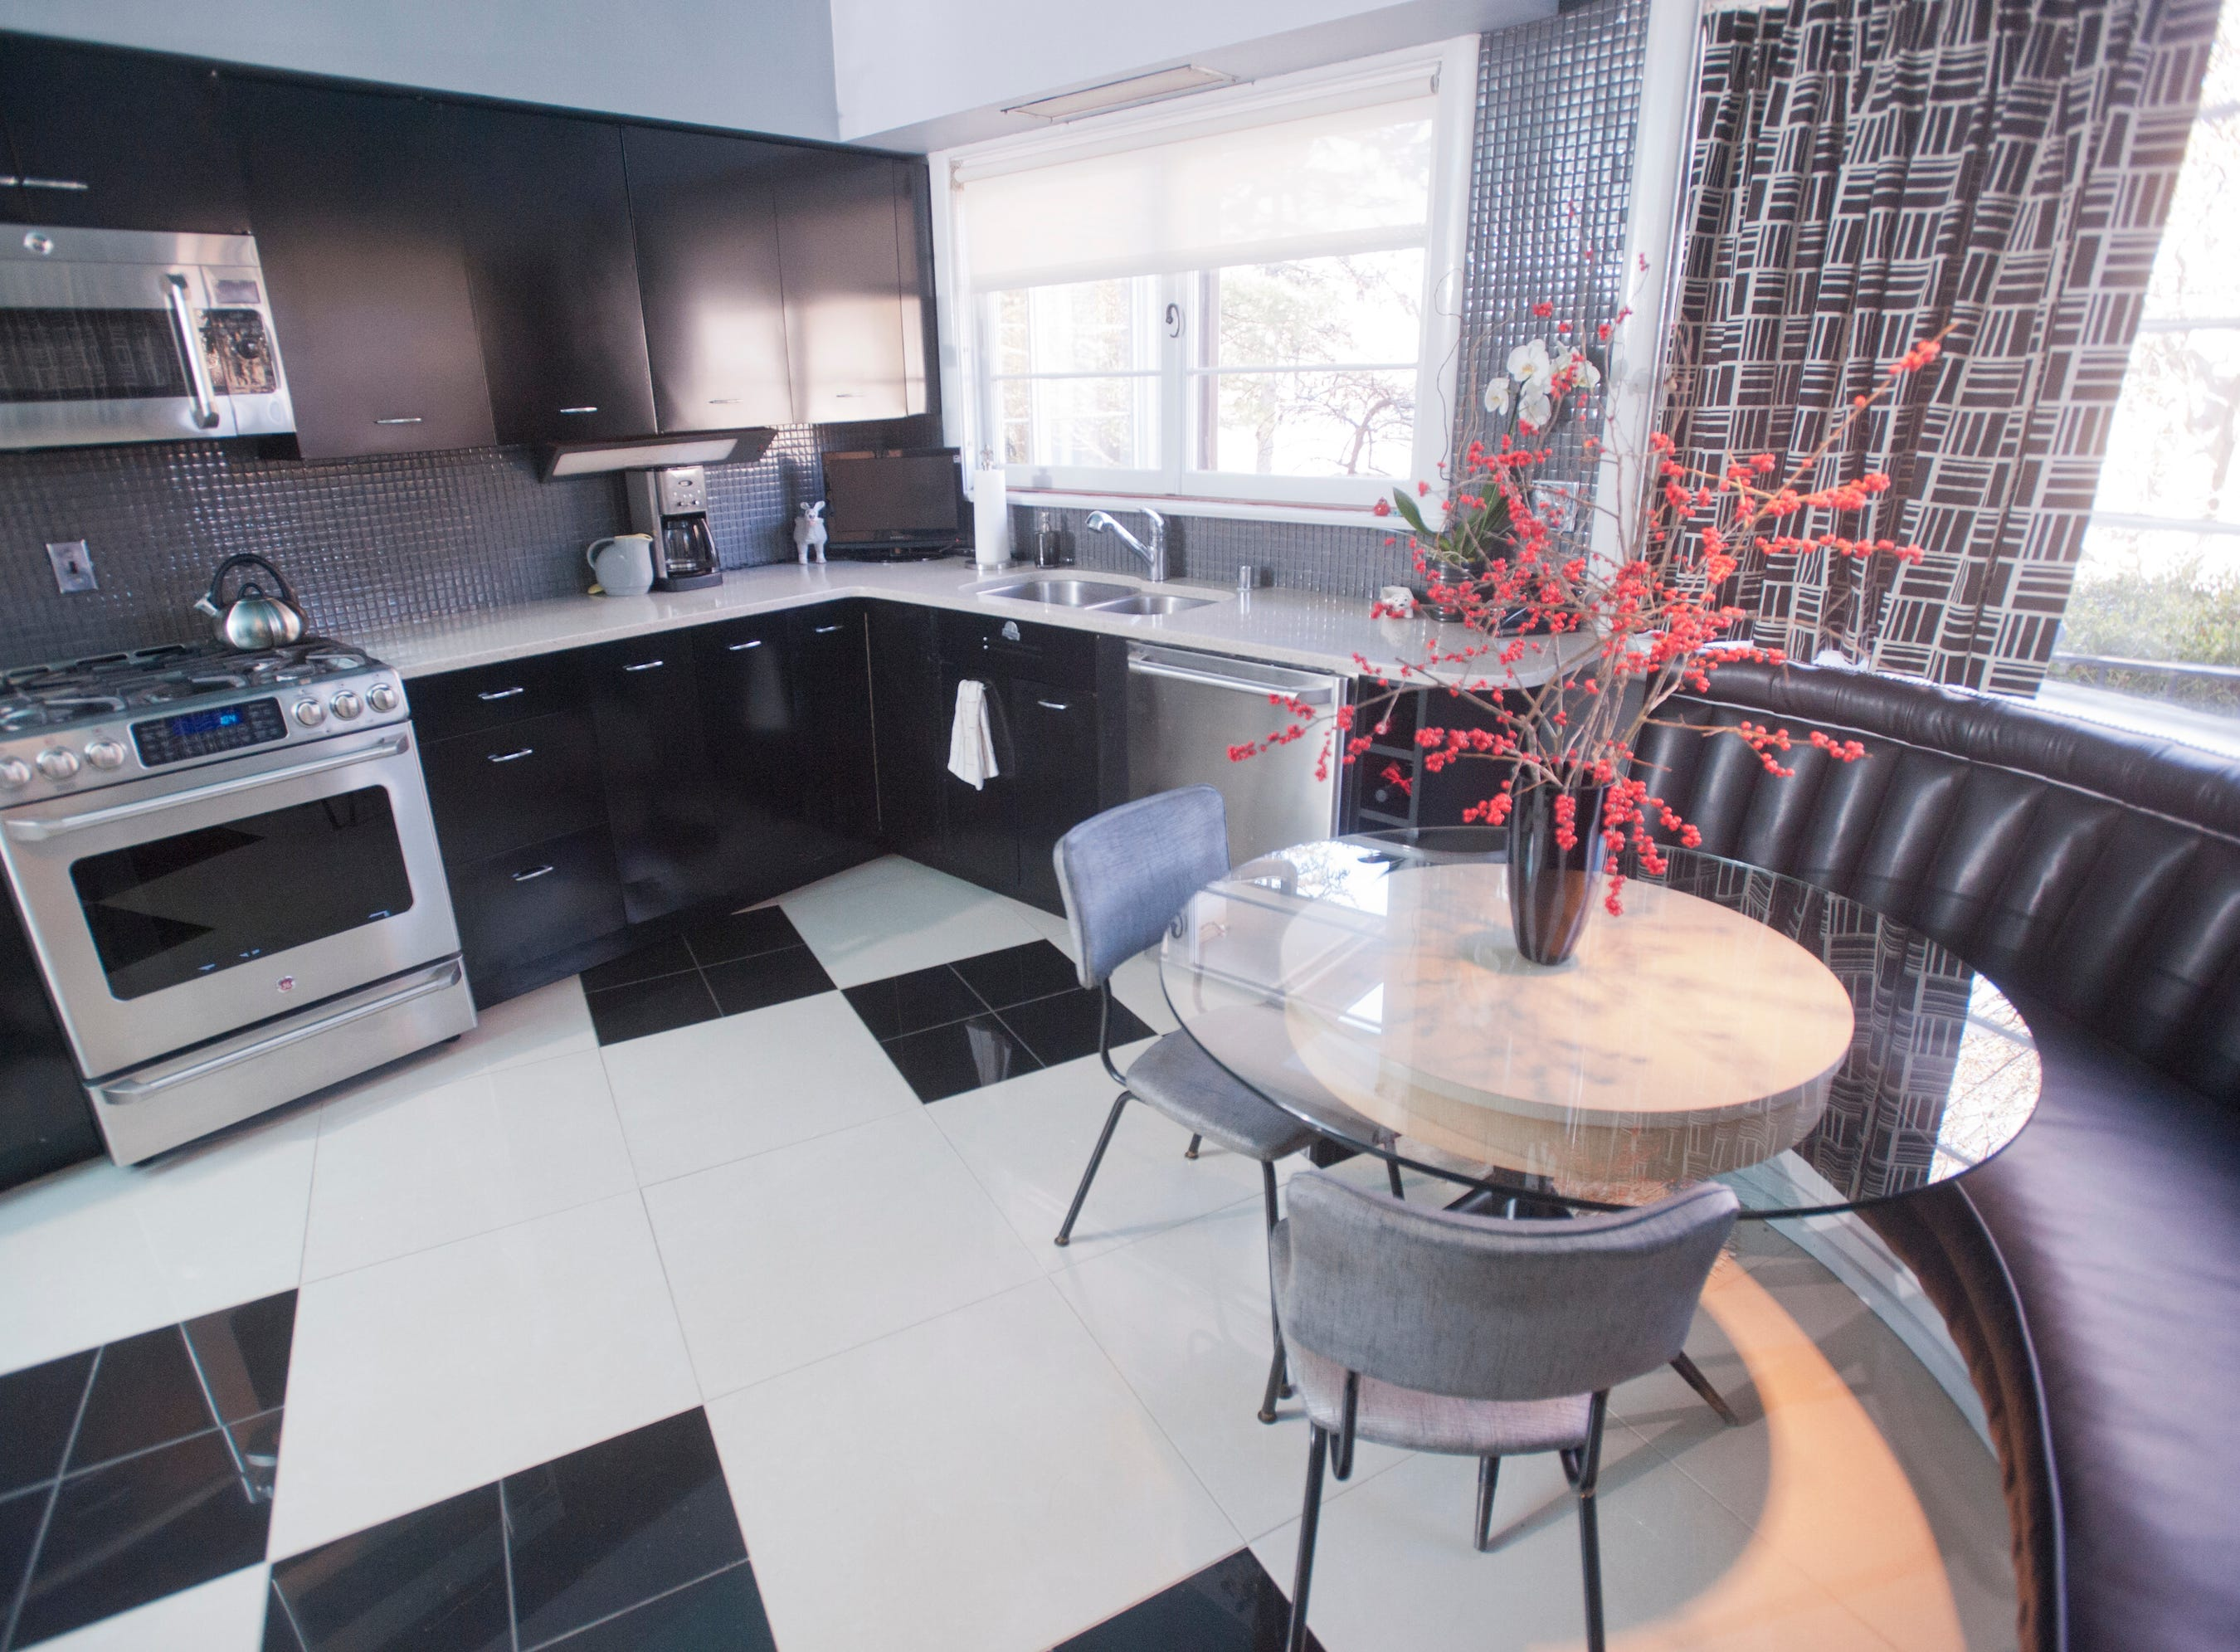 The family kitchen including a small kitchen table.10 December 2018